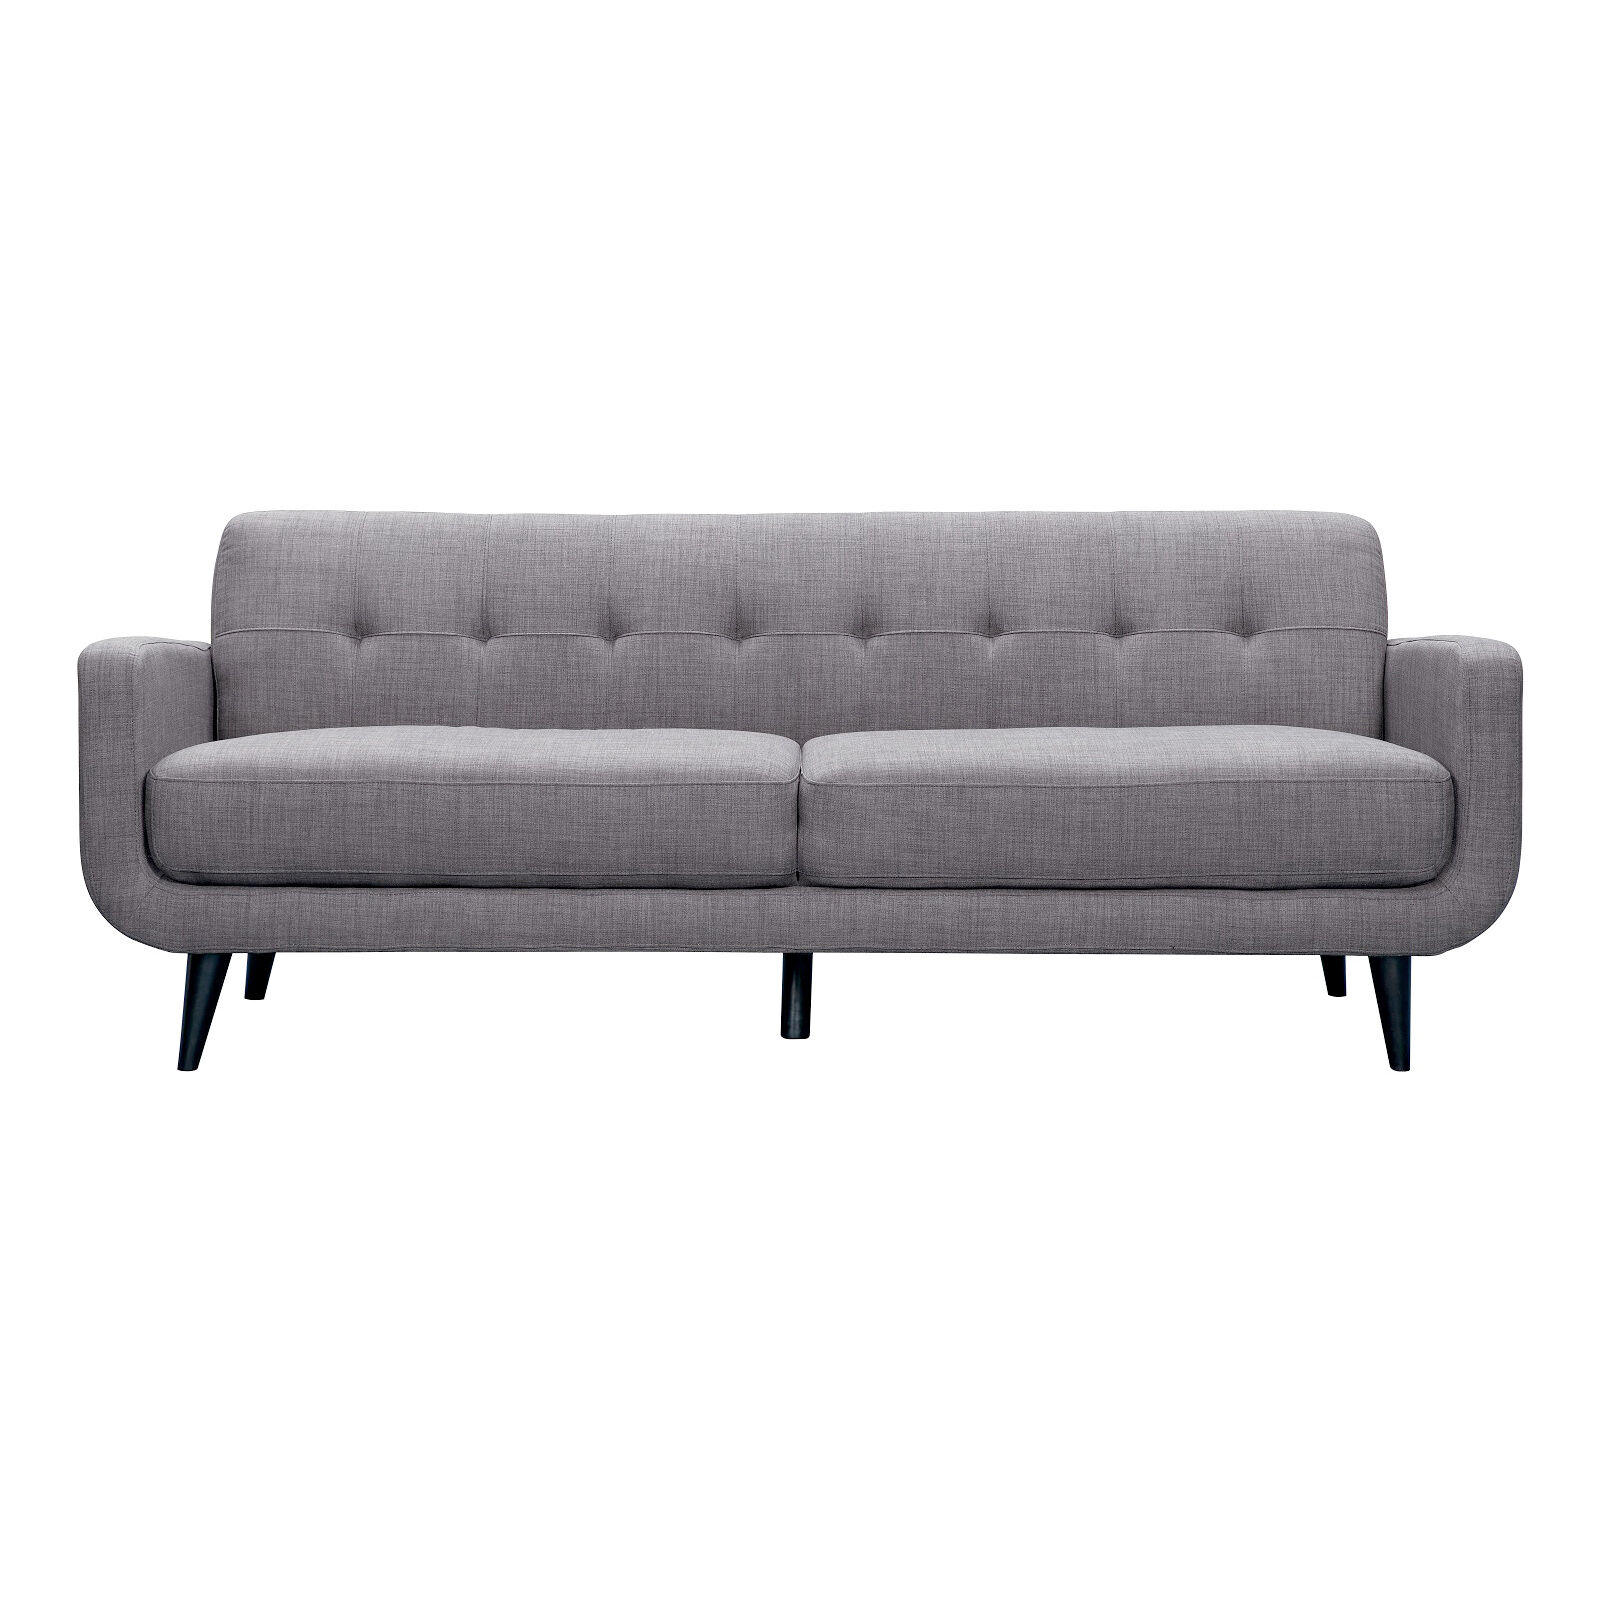 Next Sofa Measurements Hadley Sofa Heirloom Charcoal Gray